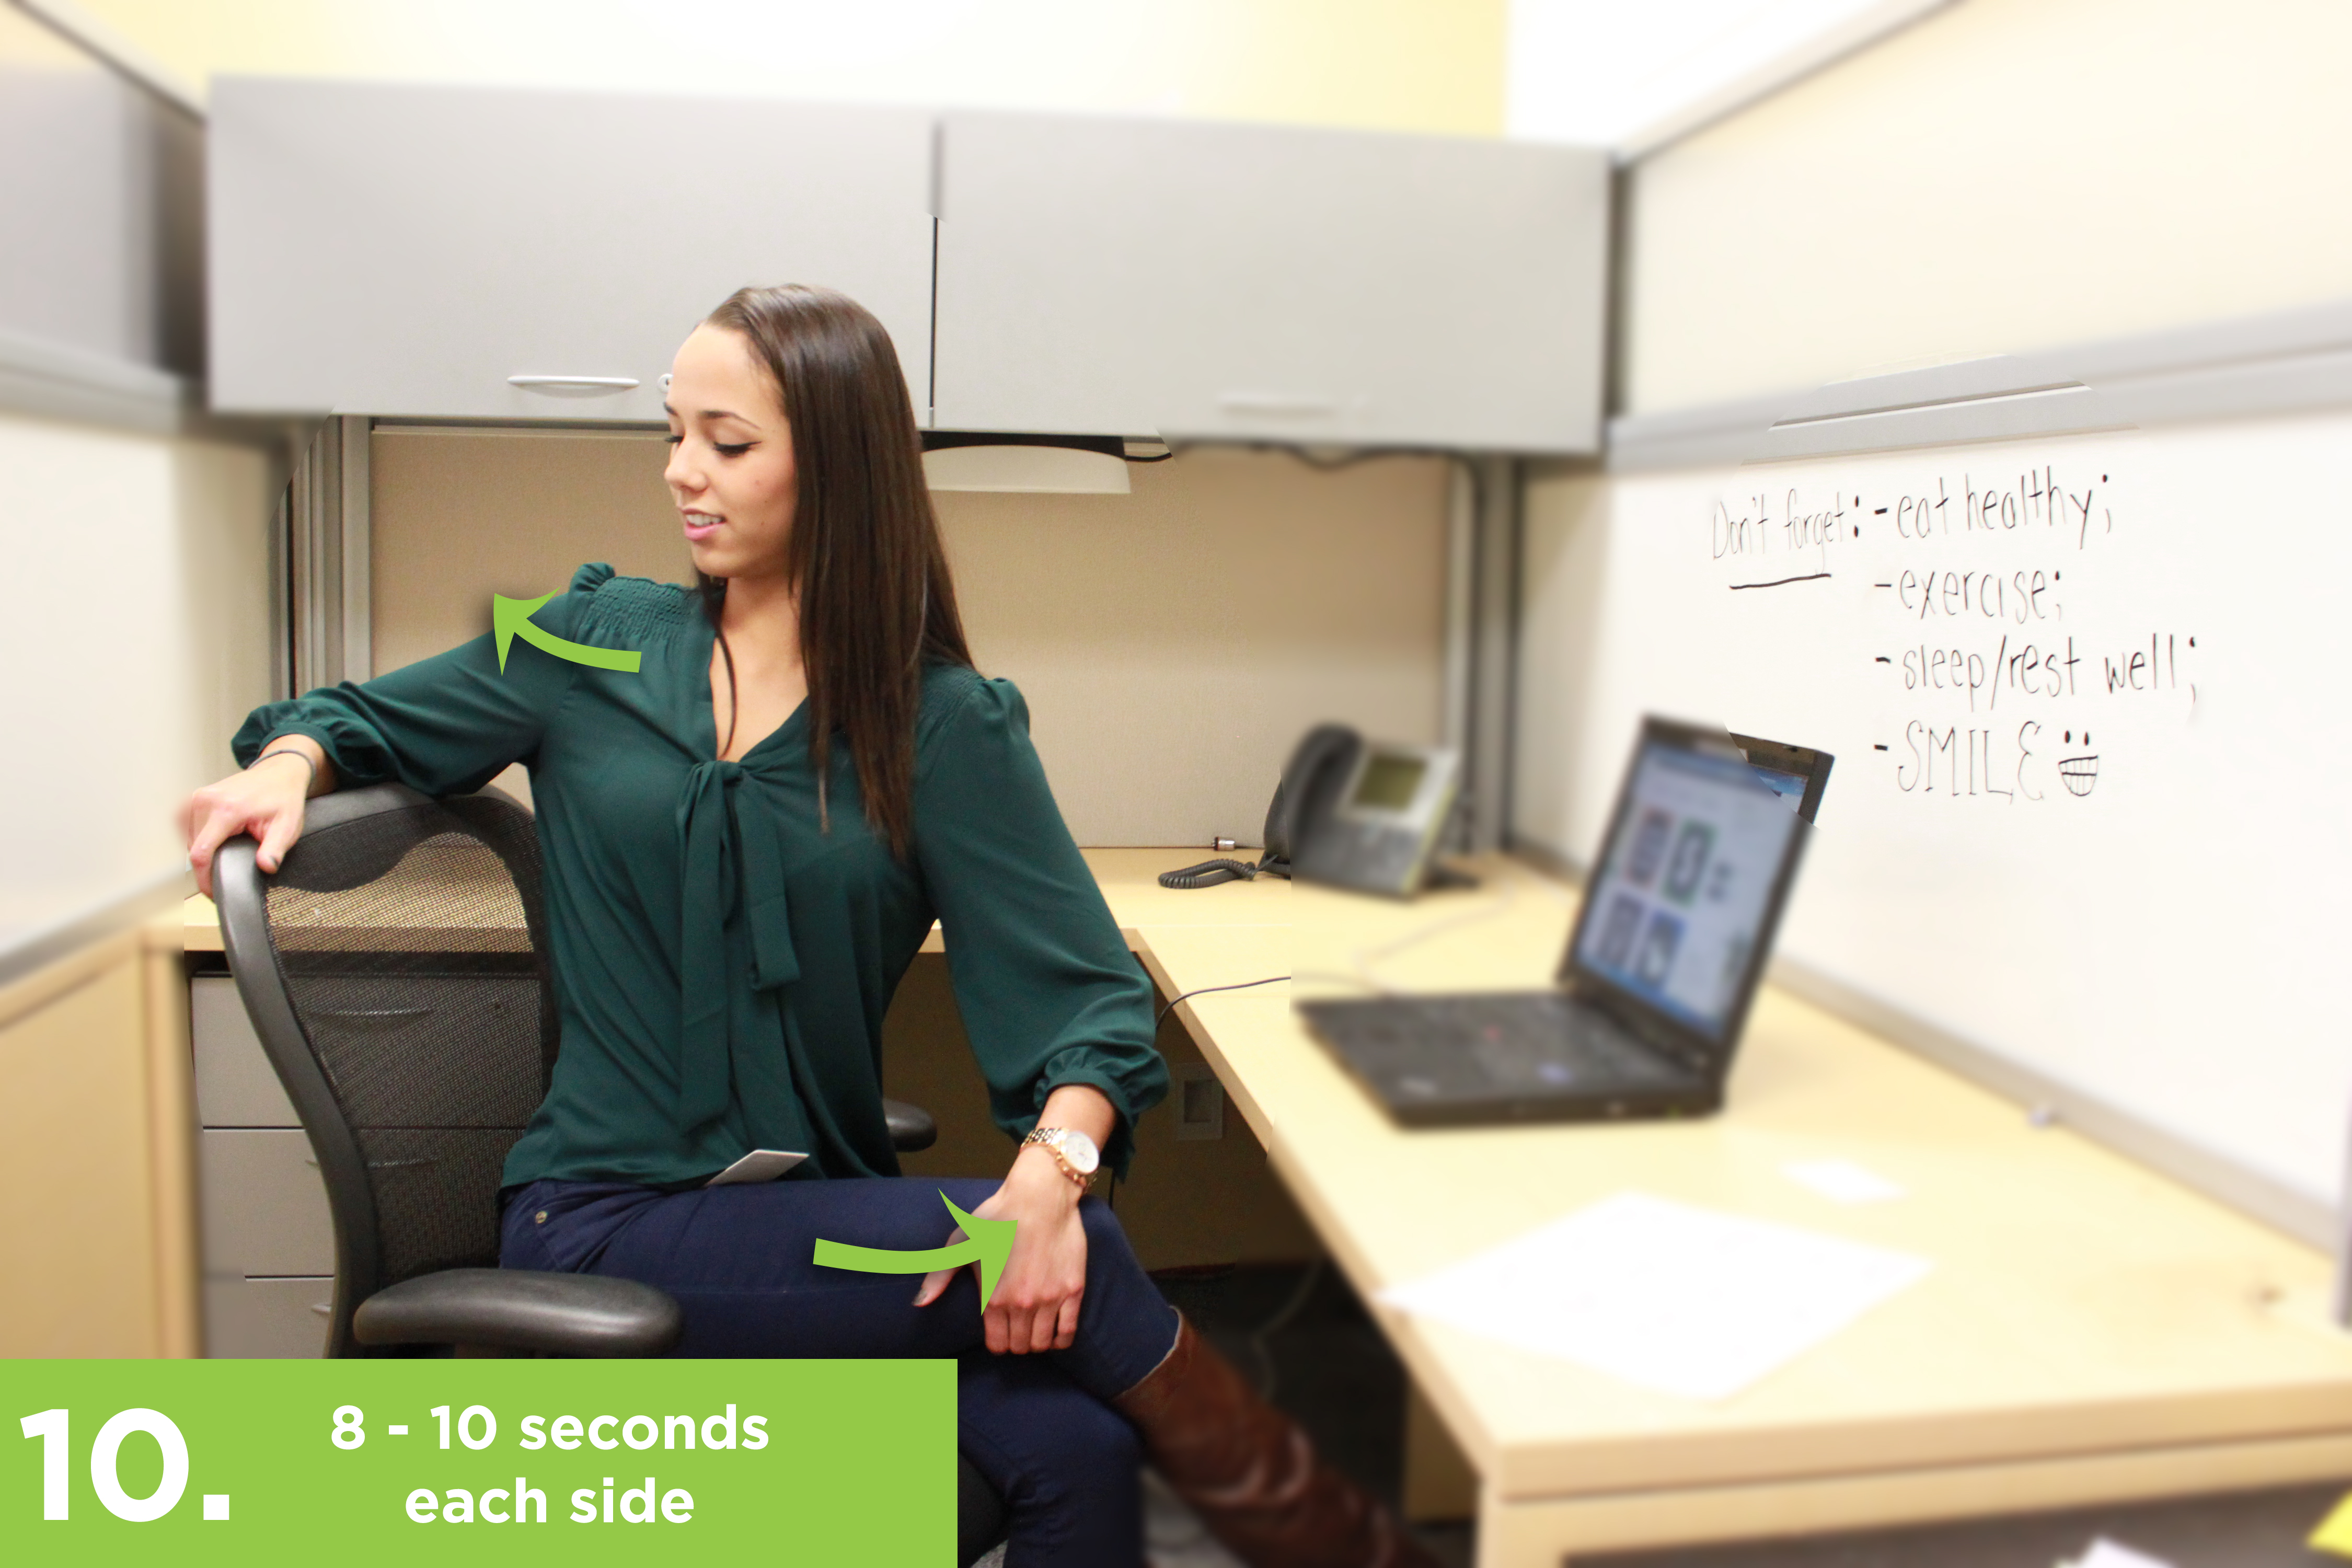 sit while at you work improve sitting desk health exercises exercise watch all your a to day